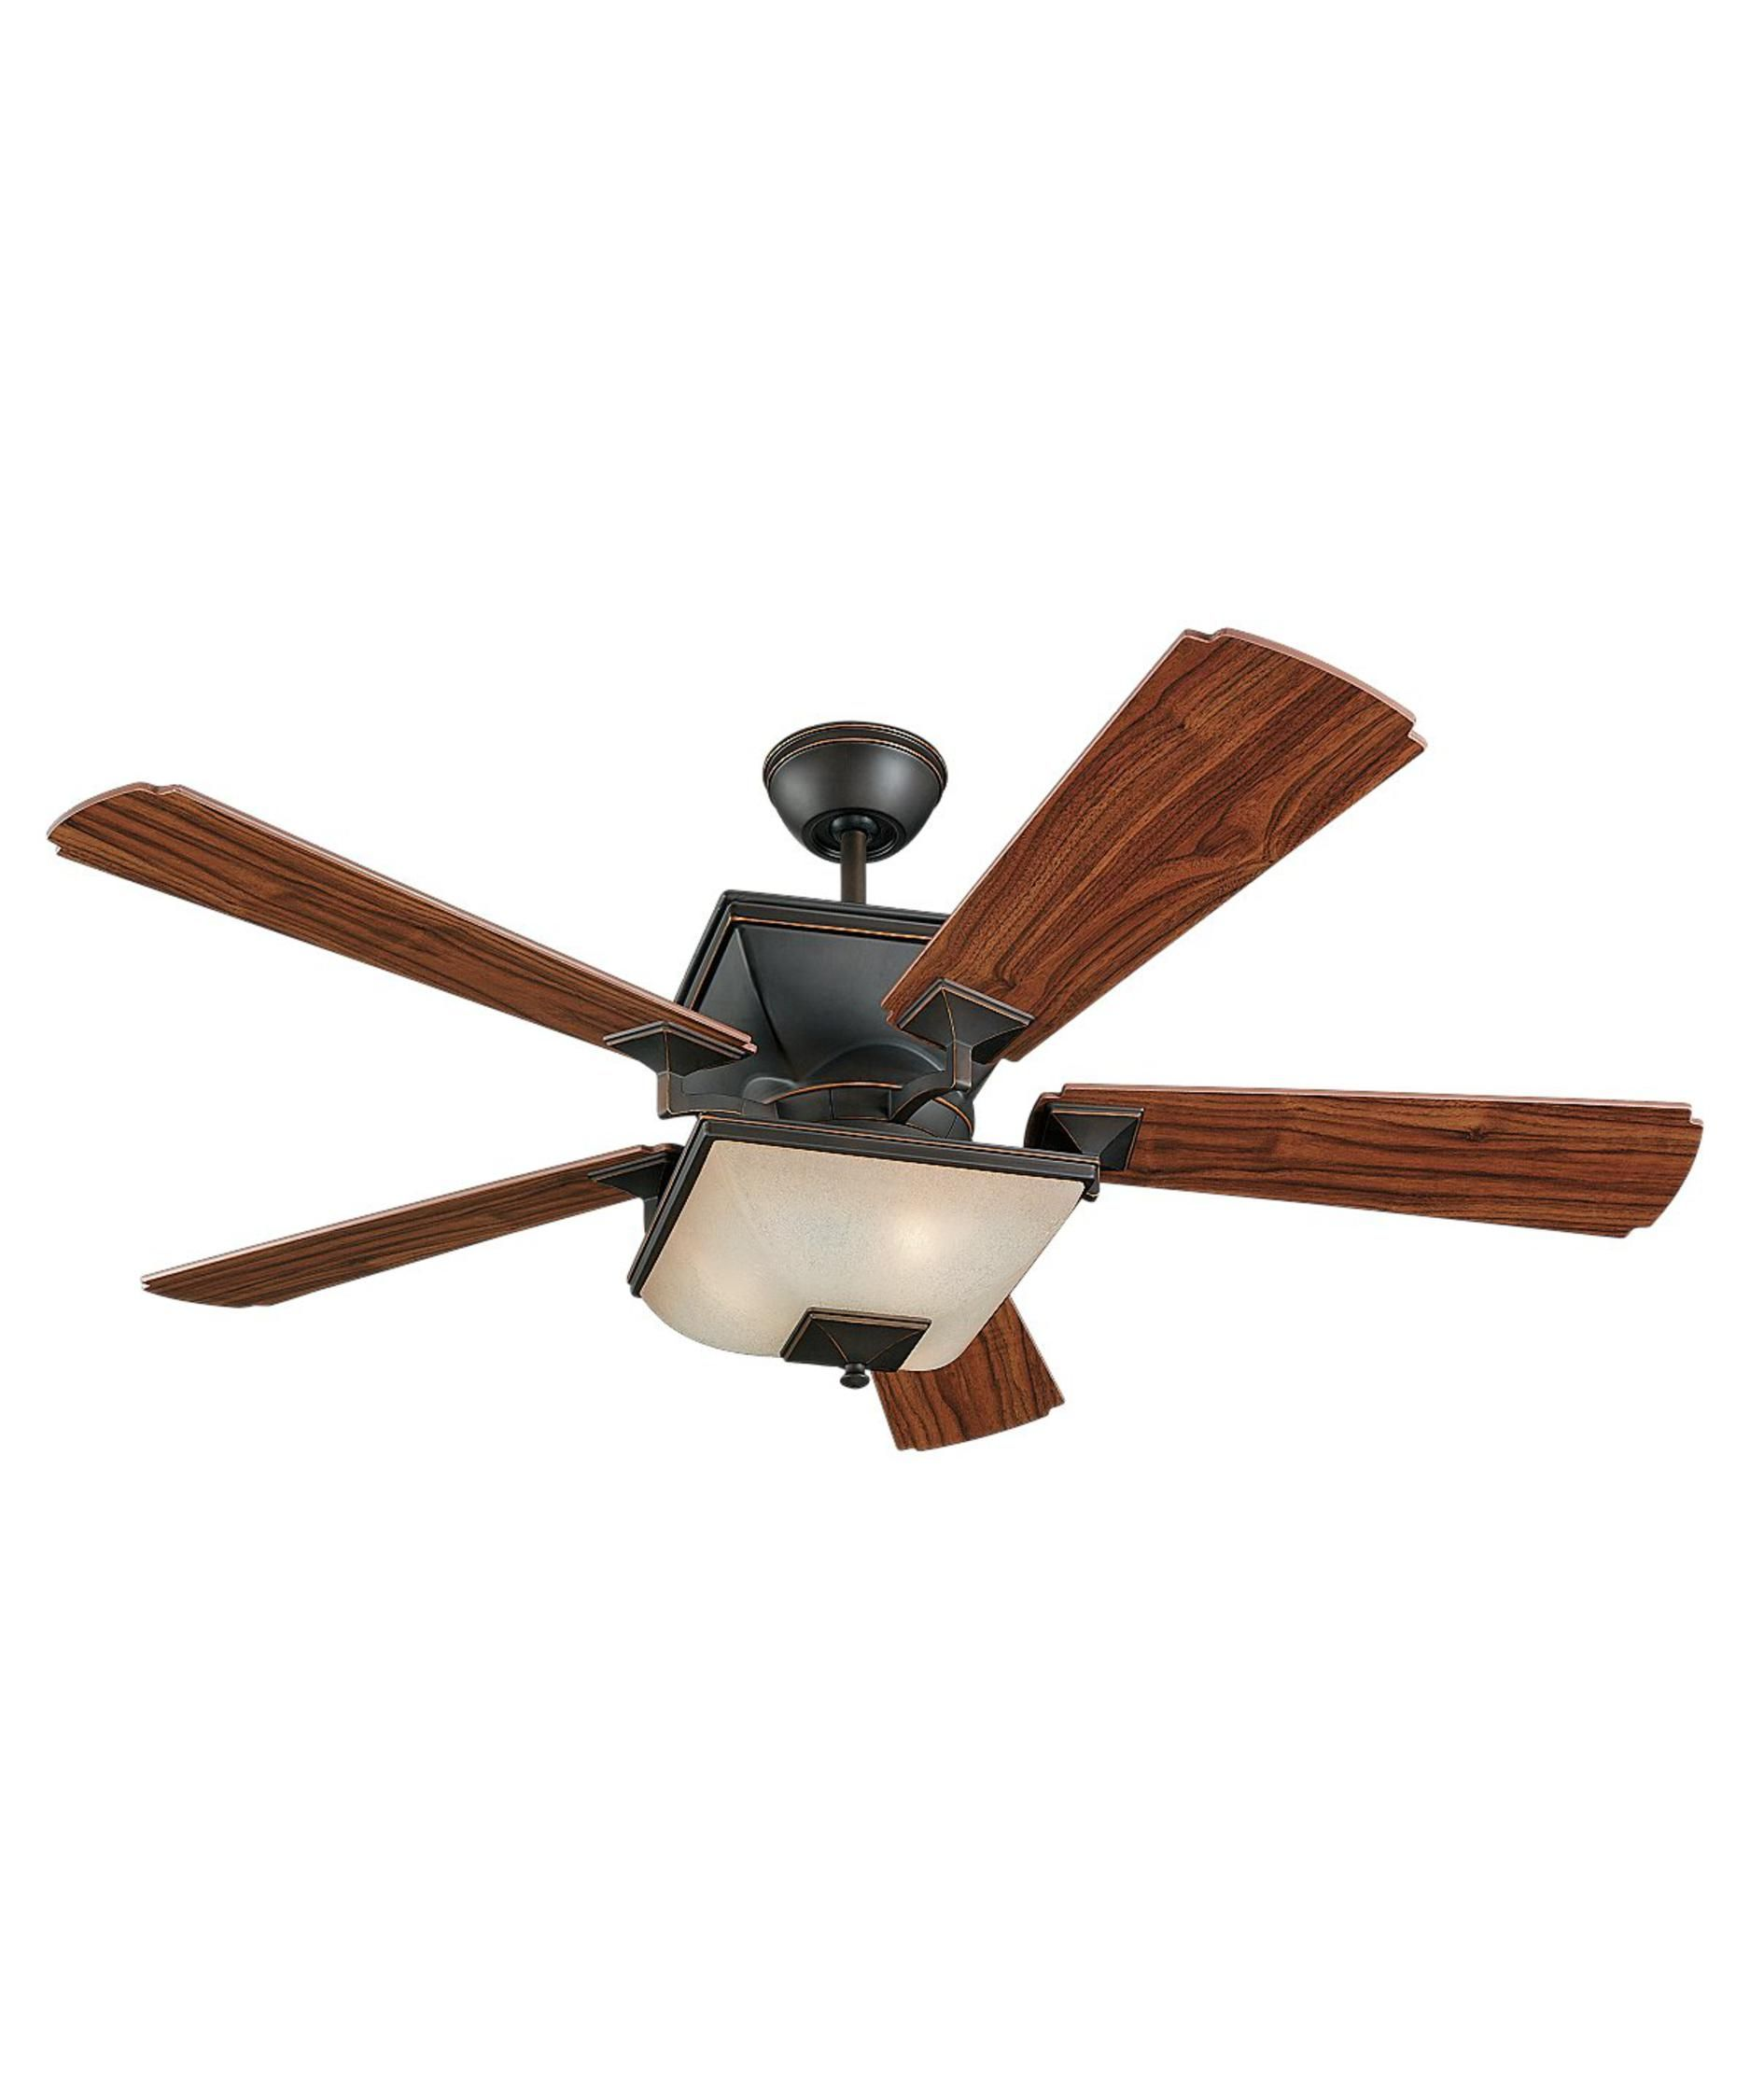 Monte carlo 5tq52 town square 52 inch ceiling fan with light kit monte carlo 5tq52 town square 52 inch ceiling fan with light kit capitol lighting 1 mozeypictures Gallery